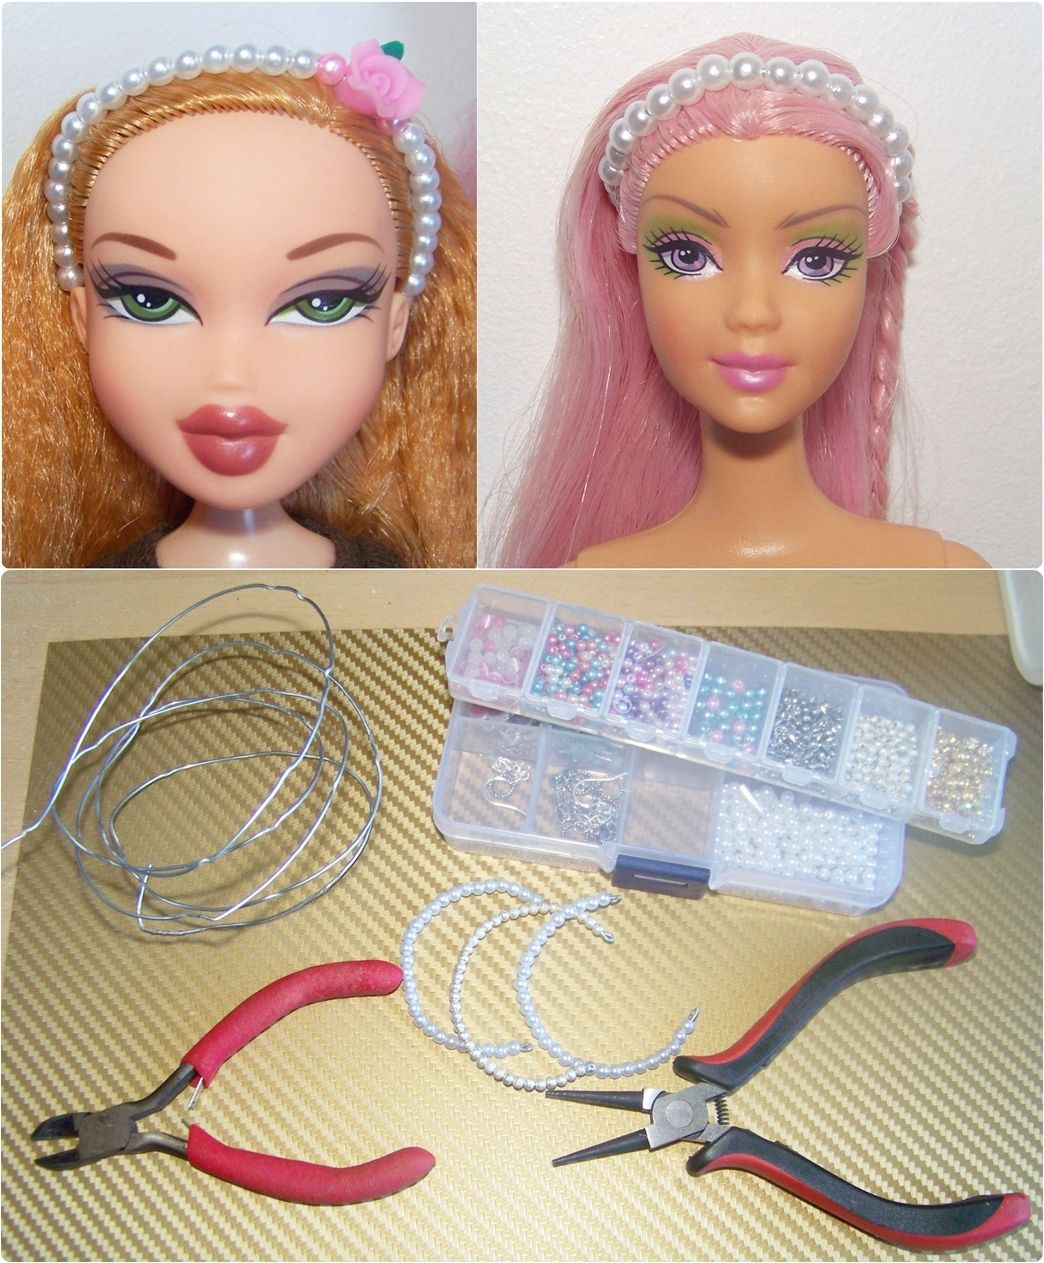 Uncategorized How To Make Barbie Doll how to make doll headbands jewelry accessories headbands